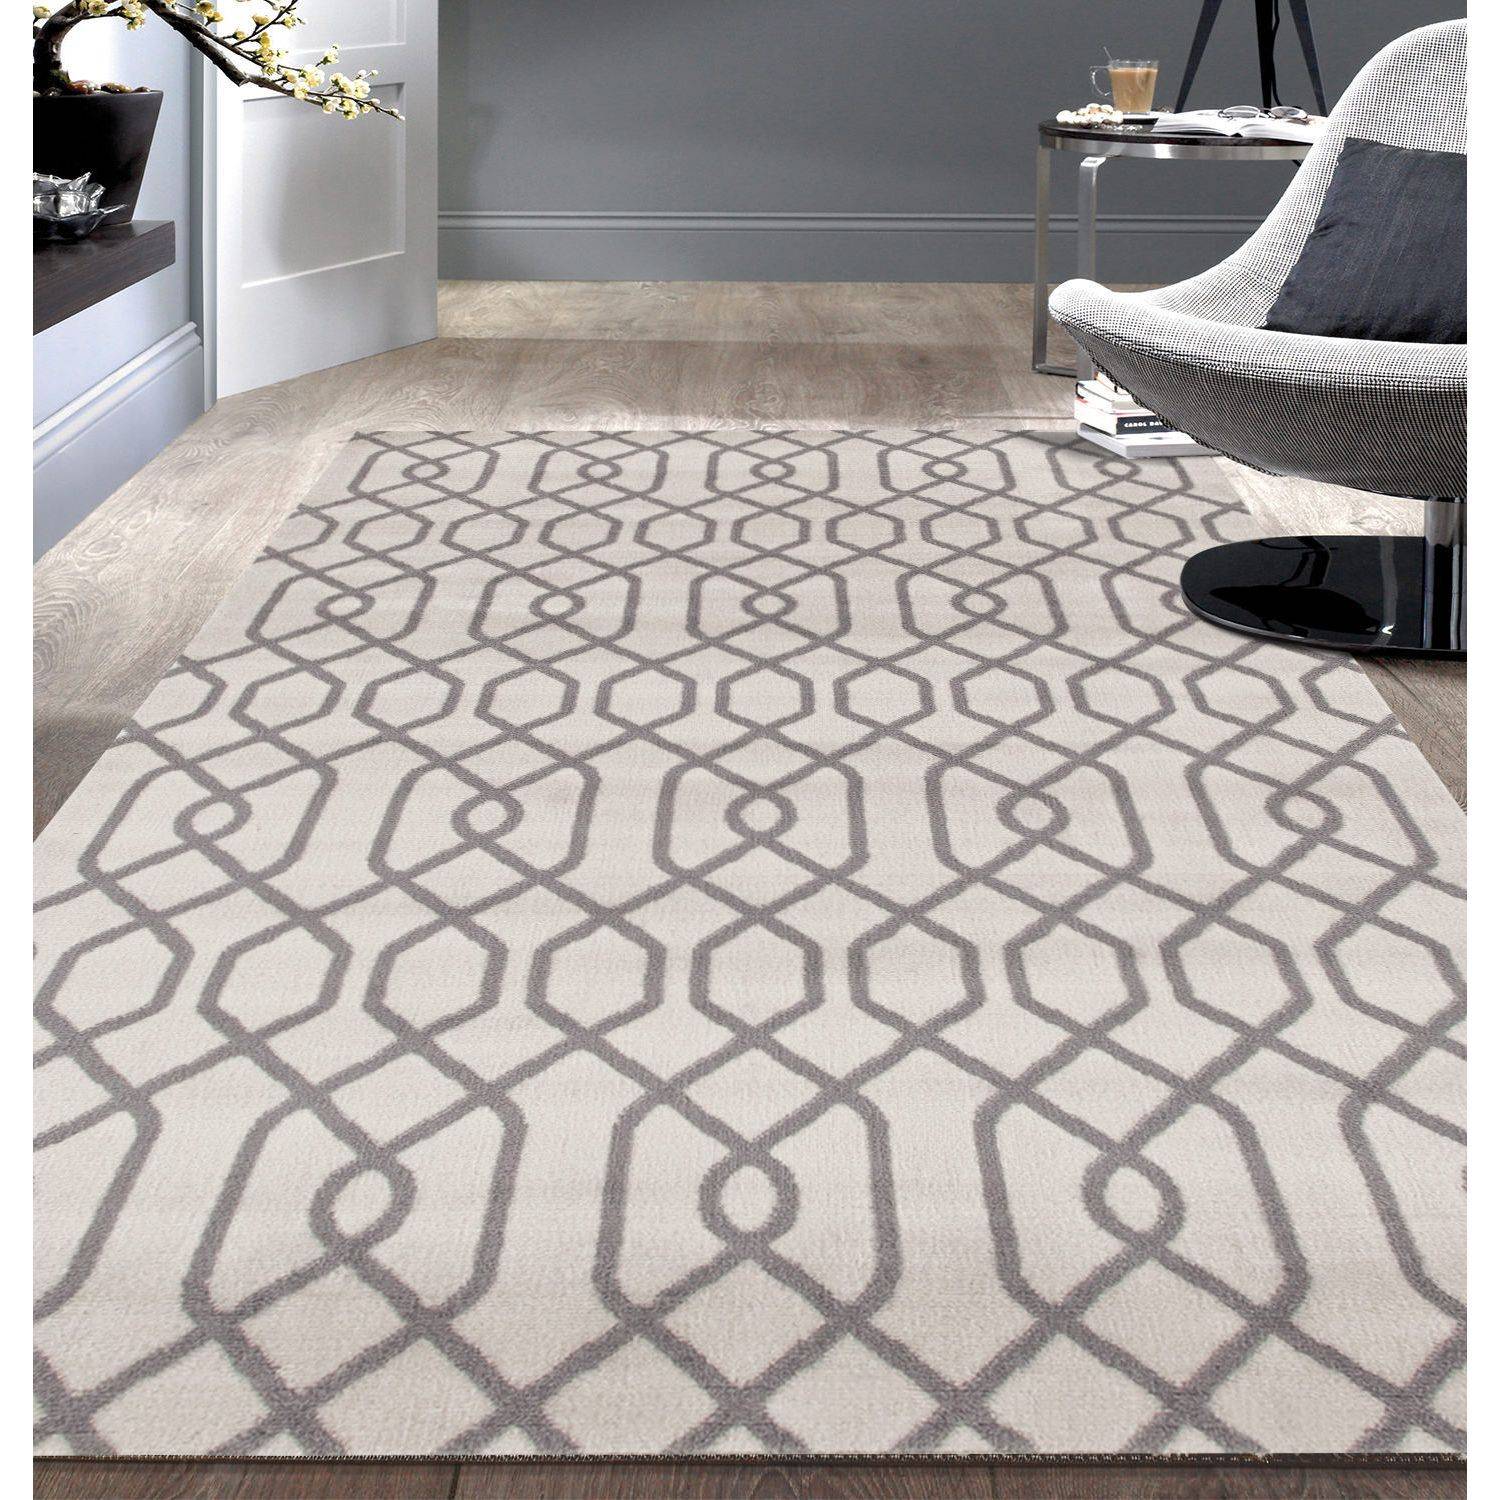 Buy modern trellis rug from Overstock for everyday discount